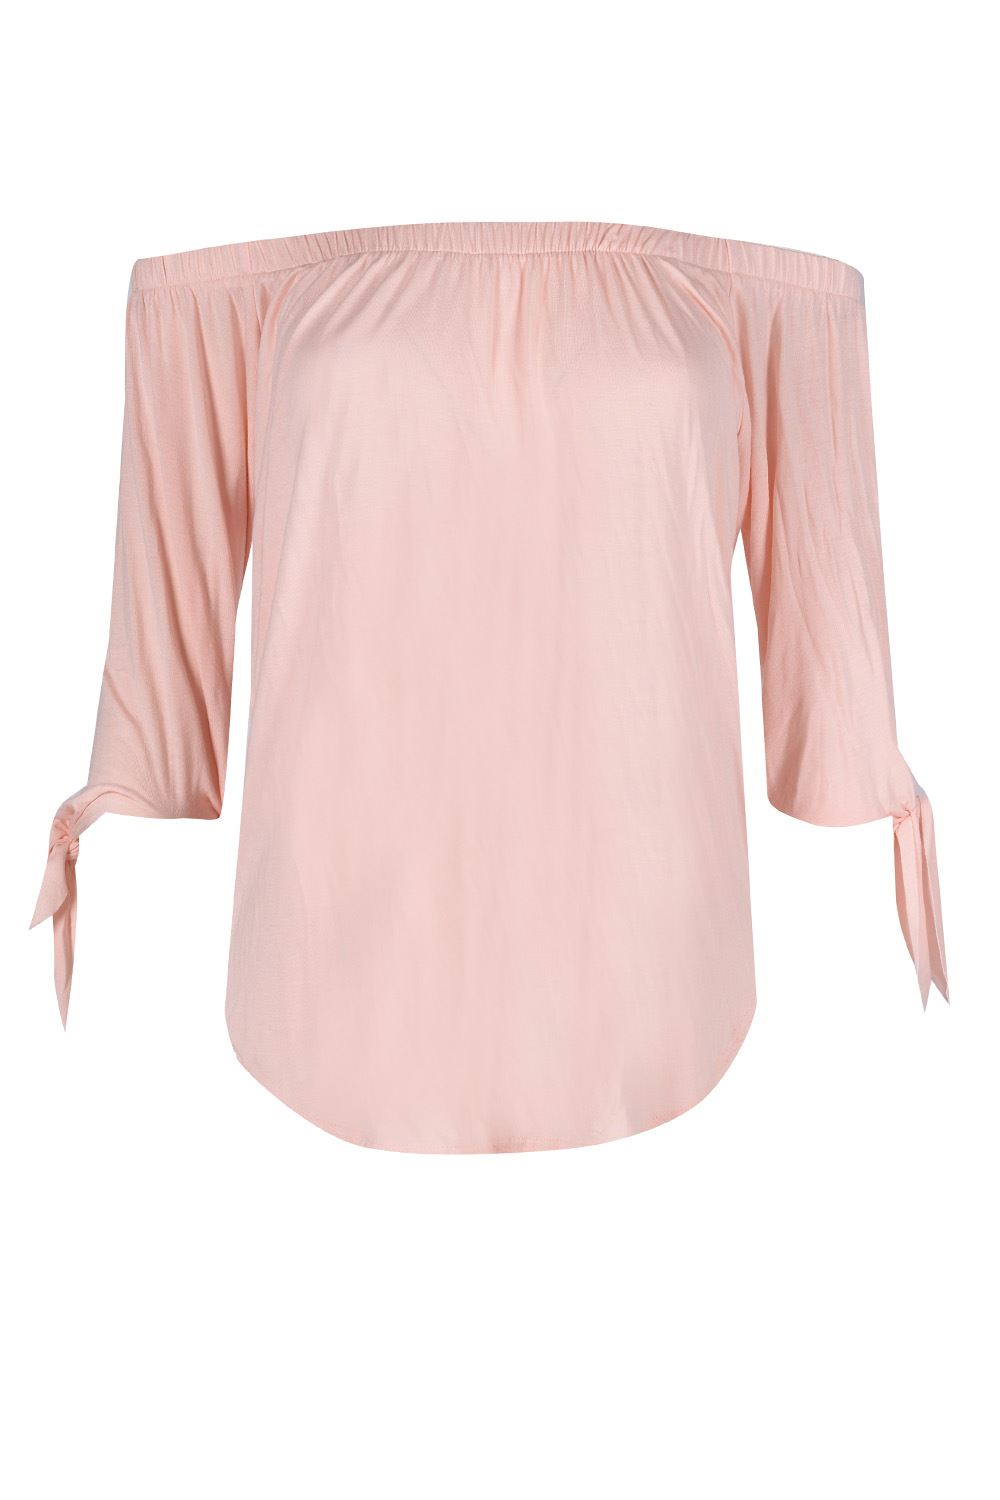 Womens Ruched Curved Hem Tie Sleeve Ladies Off The Shoulder Top T Shirt UK 8-14